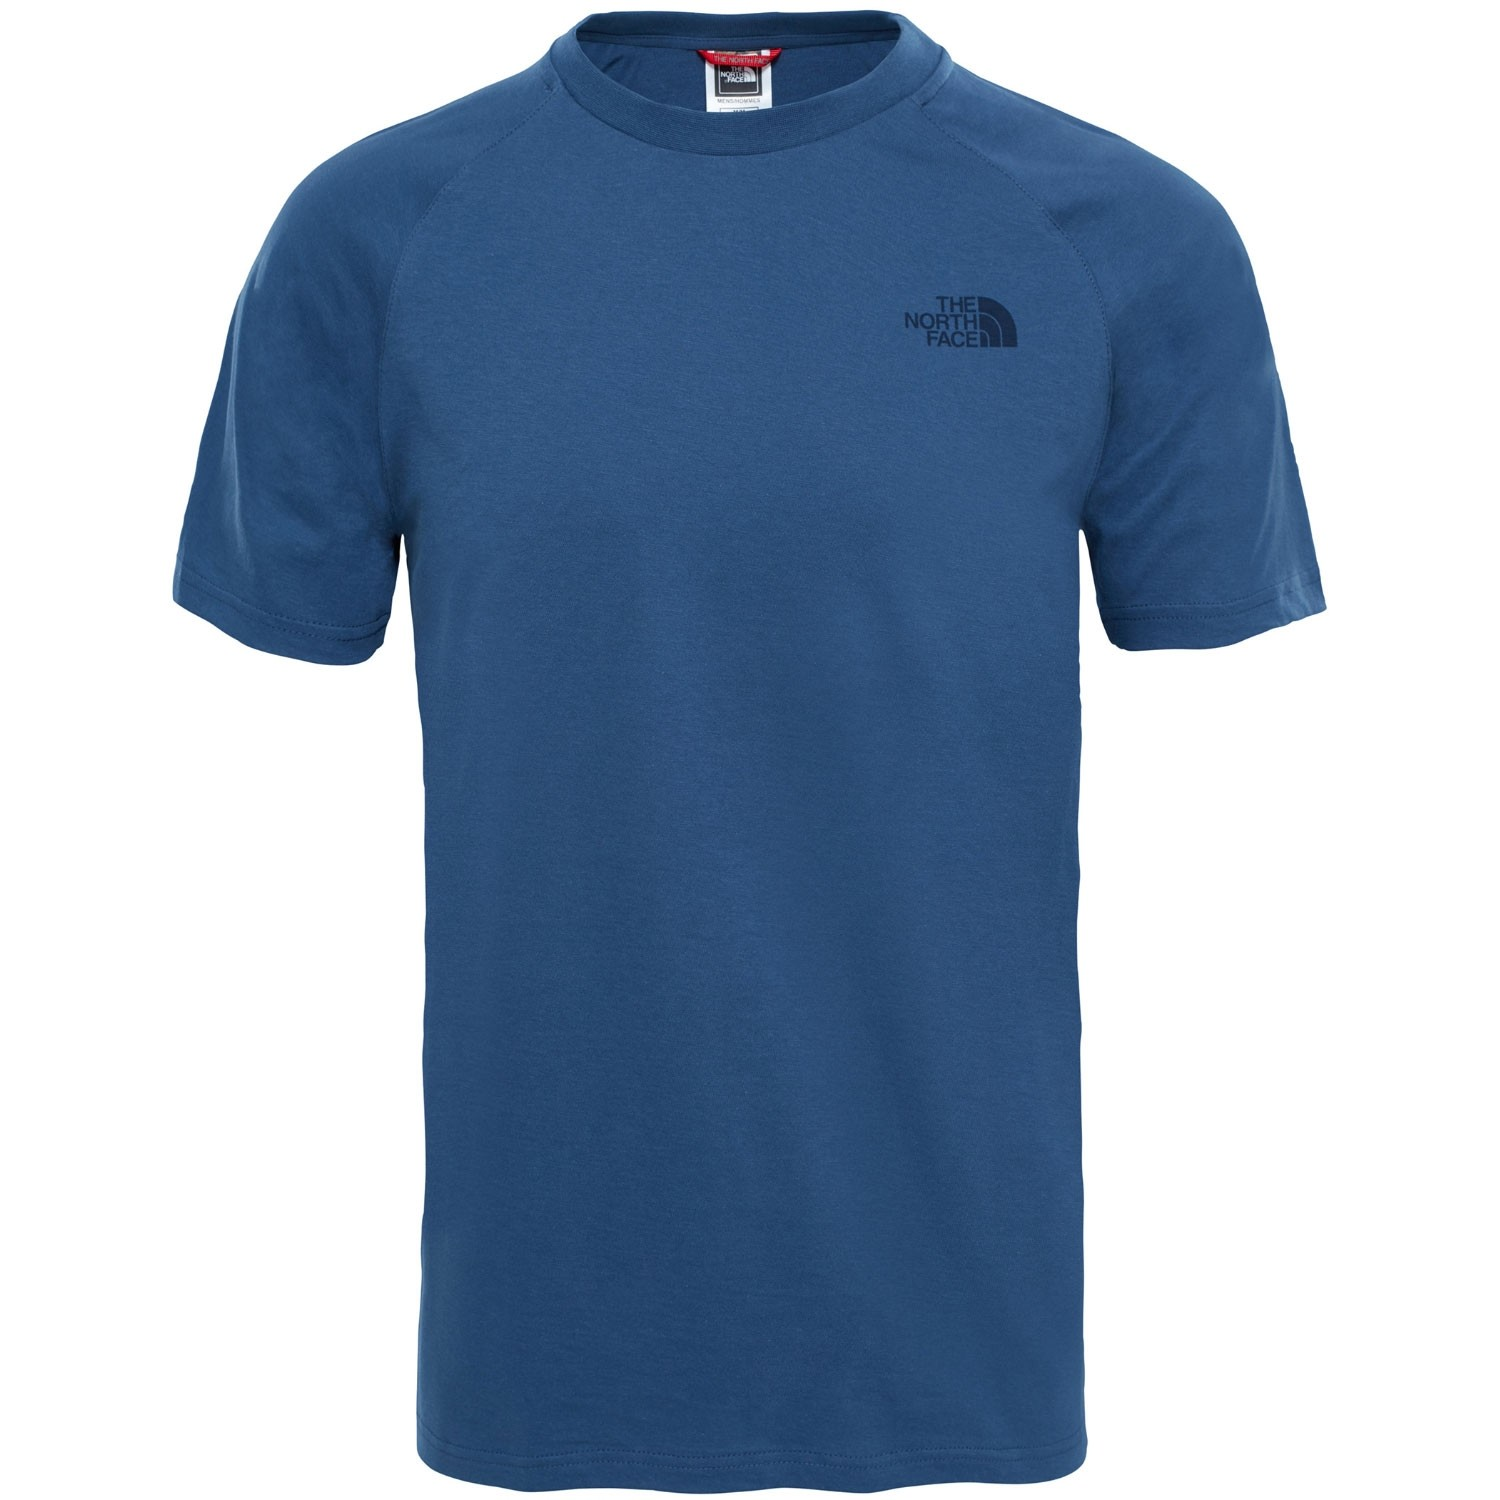 The North Face North Faces Tee - Blue Wing Teal